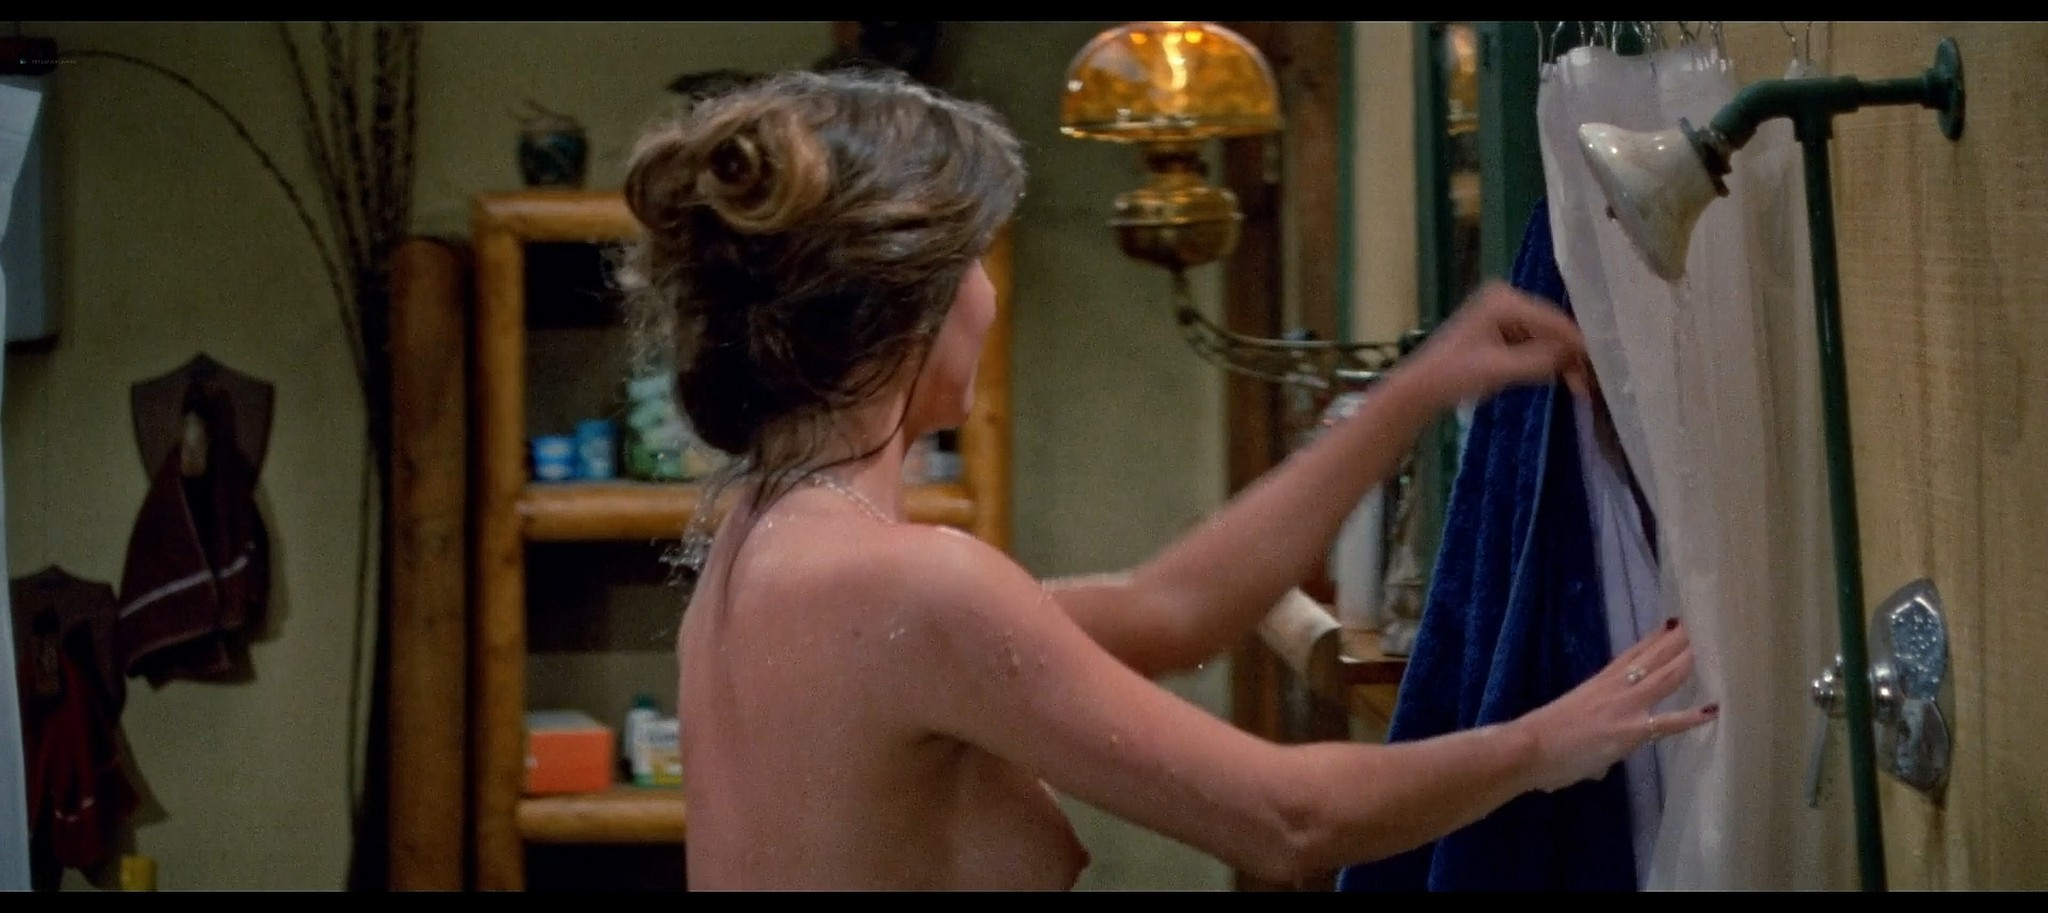 Tracie Savage nude in the shower Friday the 13th Part 3 1982 BluRay 11